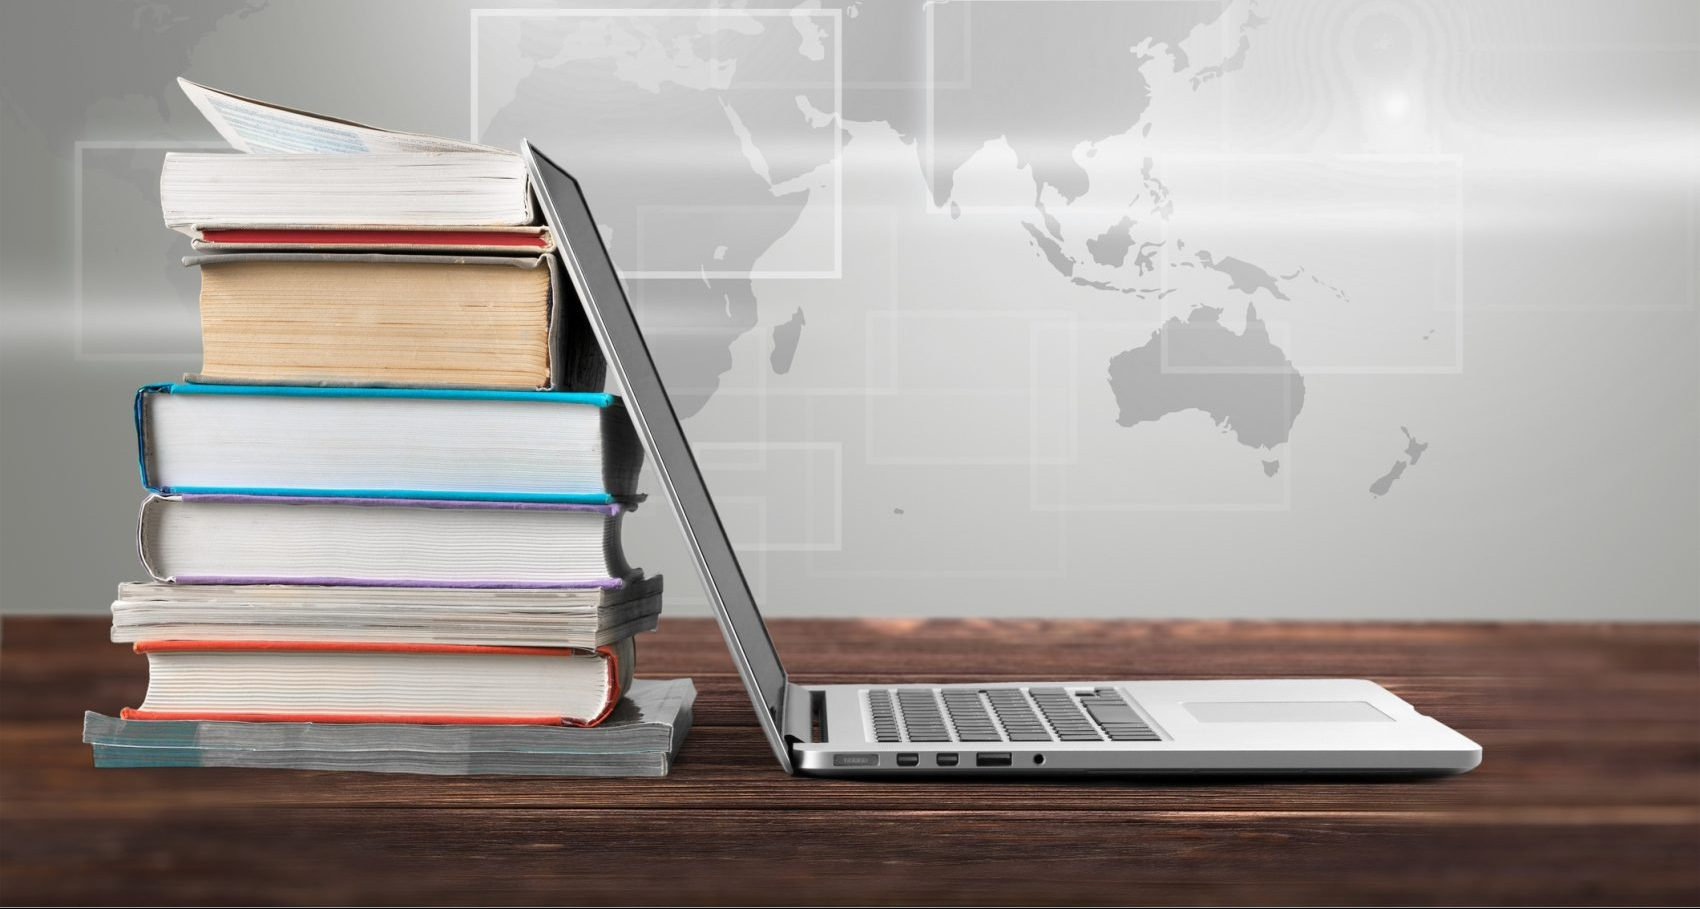 Putting the pedagogy first in digital pedagogies | World of Better Learning